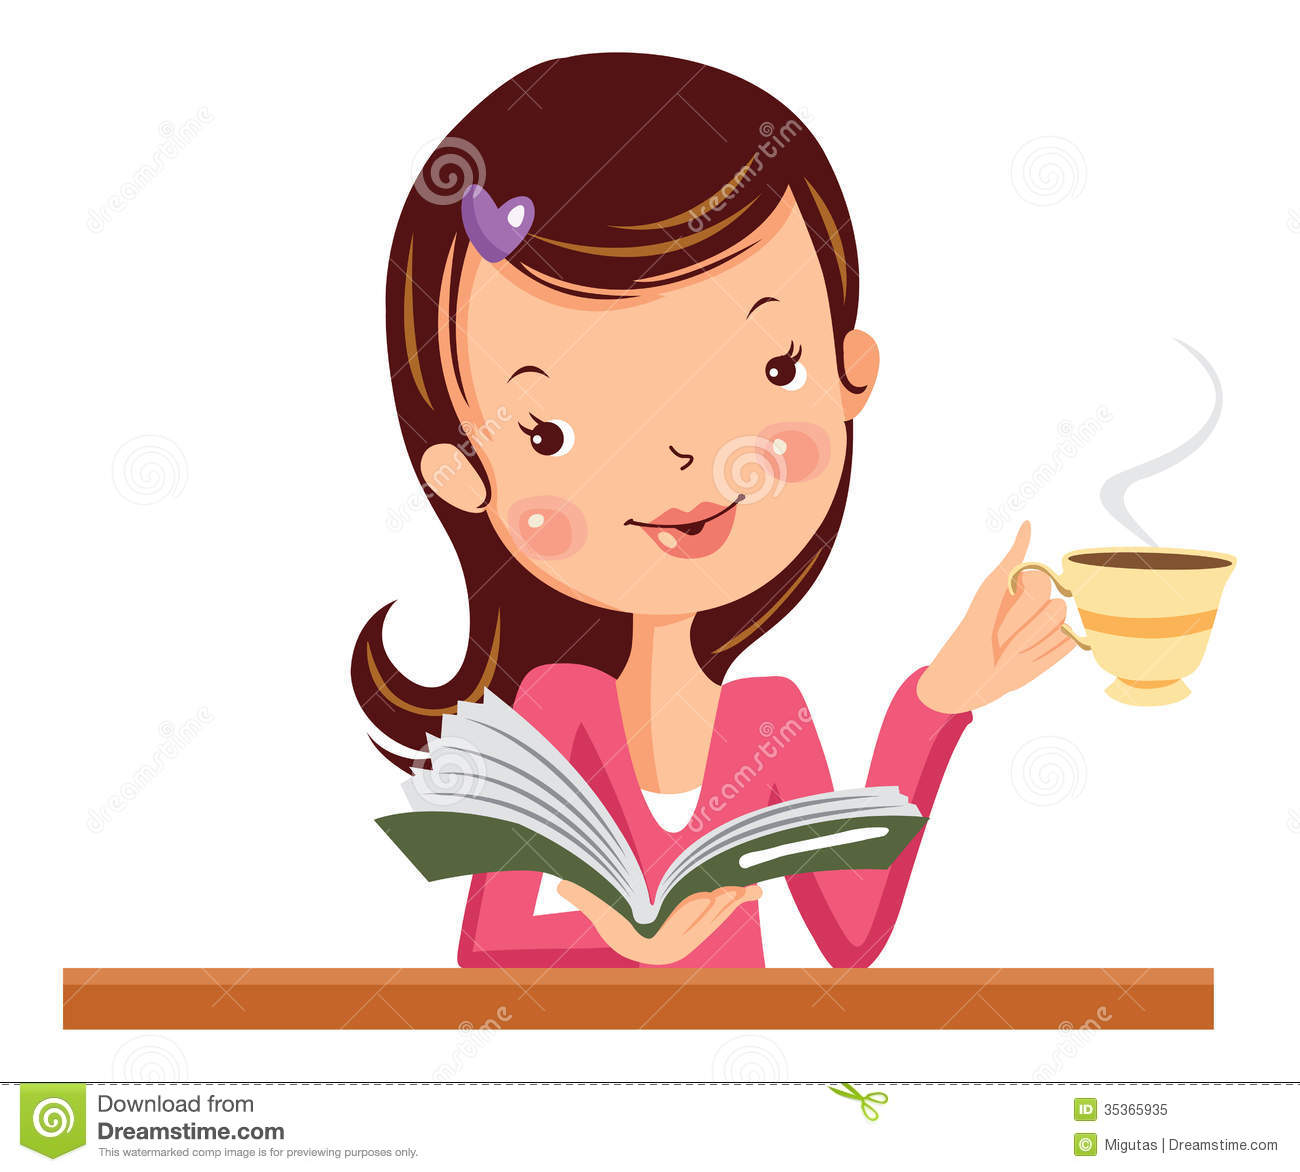 Drinking Coffee Images | Clipart Panda - Free Clipart Images